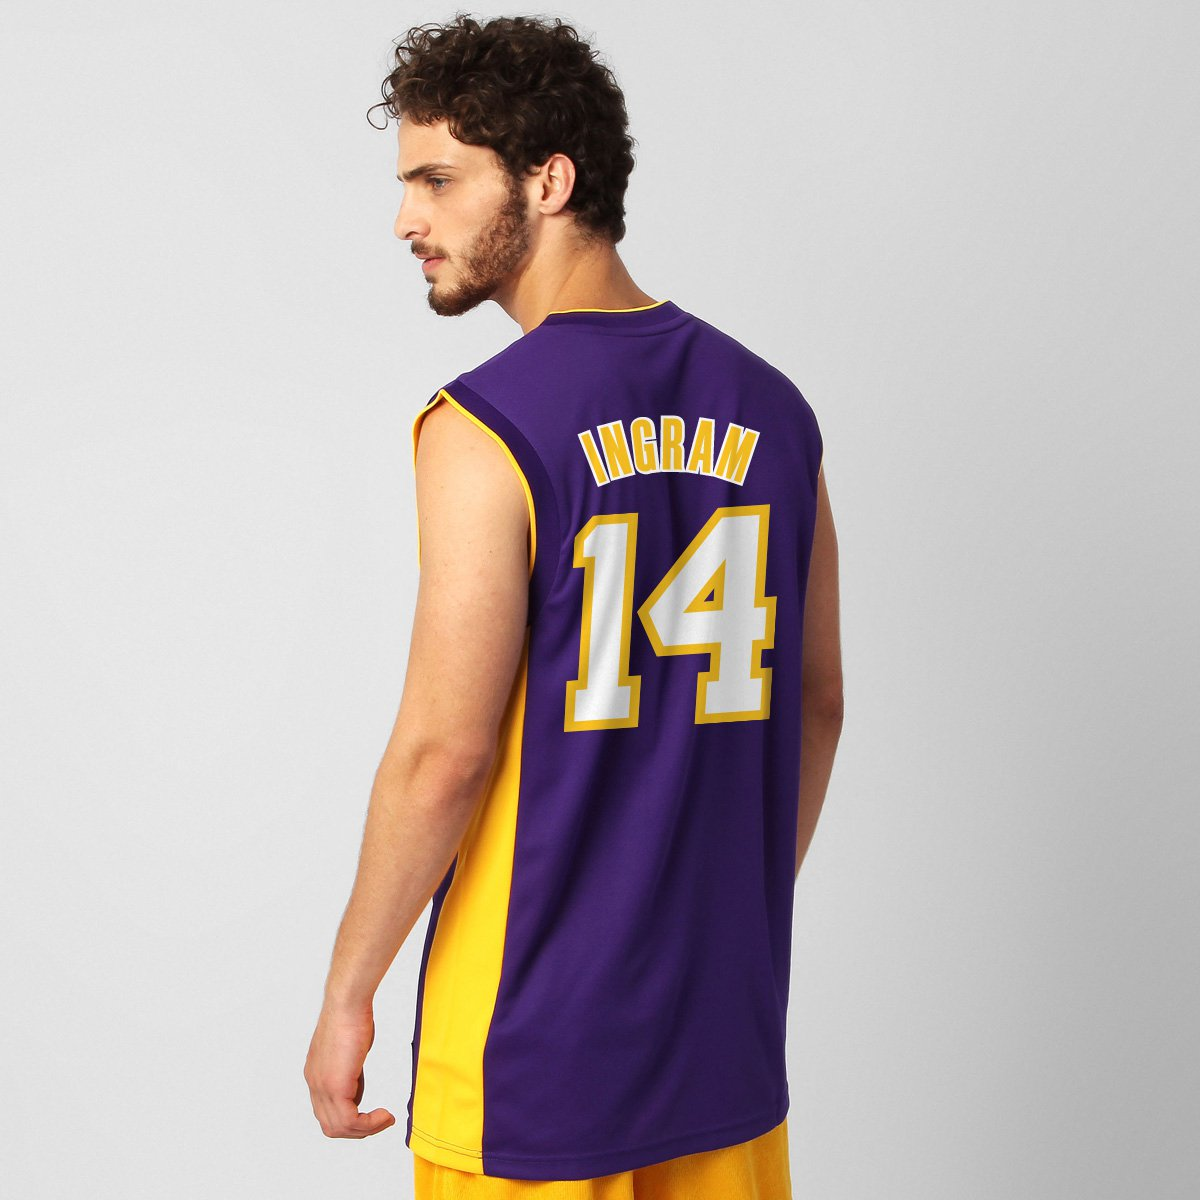 98fa8b0316 Camiseta Regata NBA Adidas Los Angeles Lakers Road - Ingram nº 14 - Compre  Agora